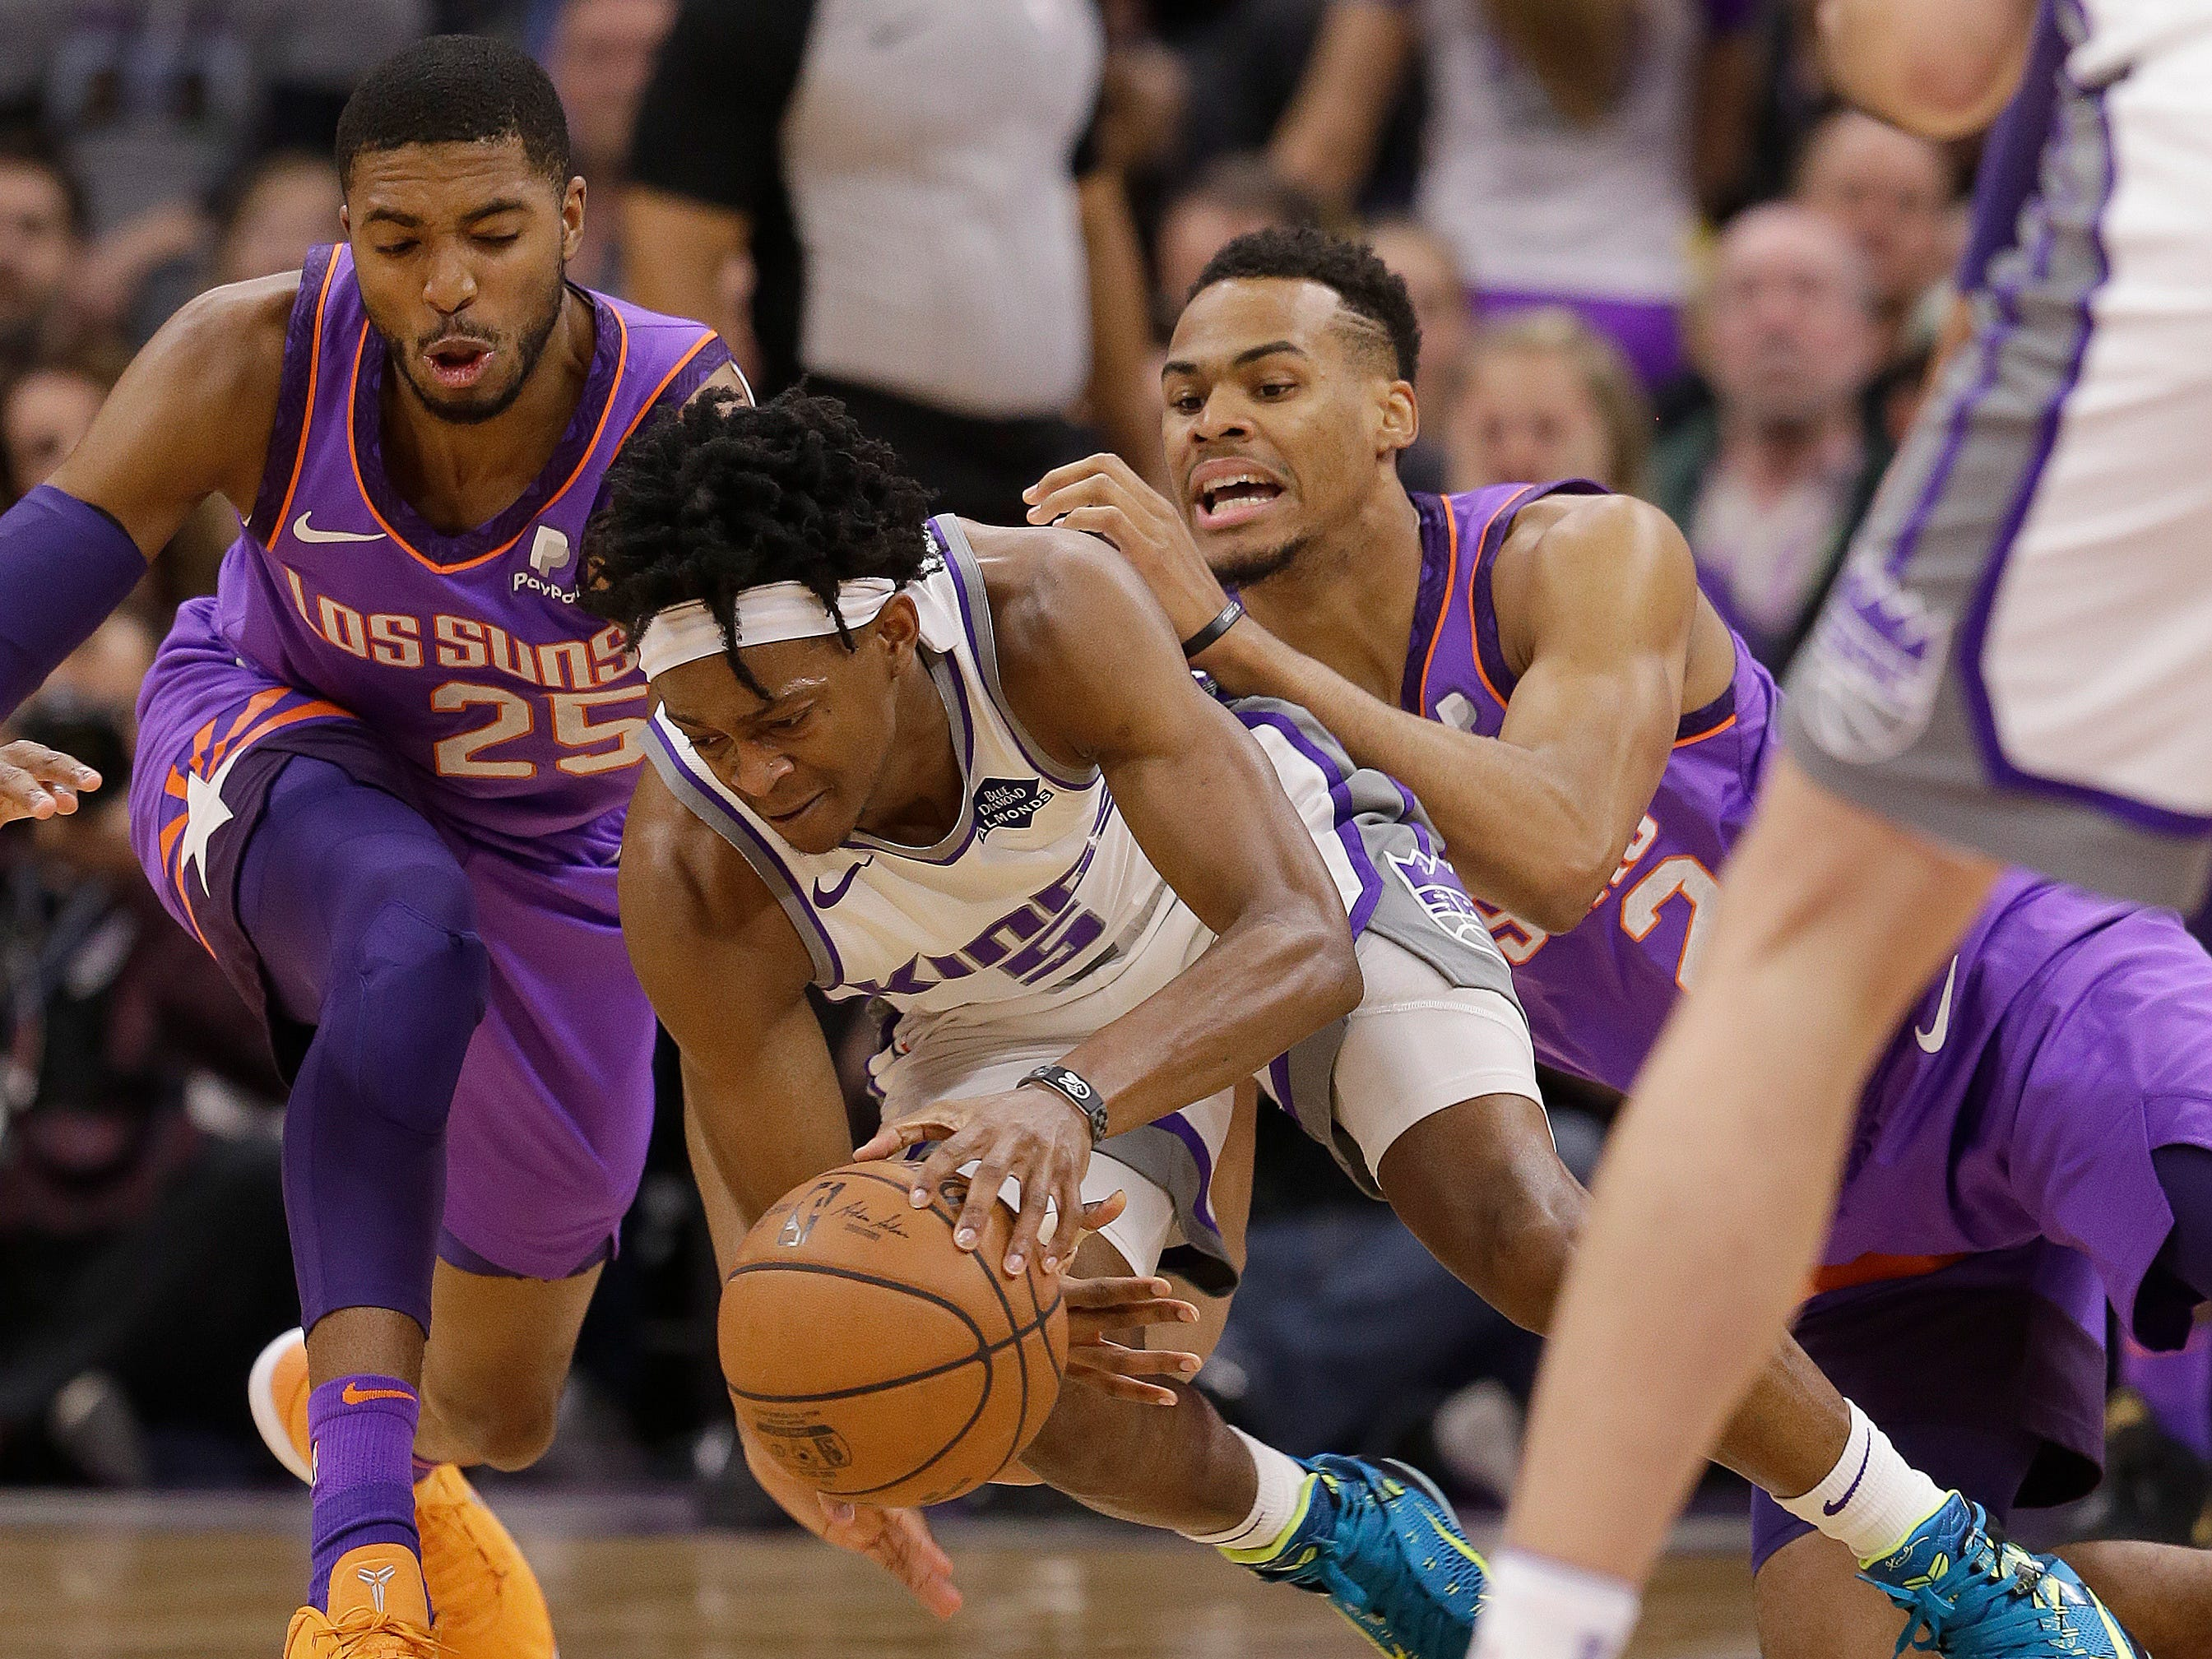 Sacramento Kings guard De'Aaron Fox, center, dives for the ball between Phoenix Suns' Mikal Bridges, left, and Elie Okobo during the first quarter of an NBA basketball game Saturday, March 23, 2019, in Sacramento, Calif.